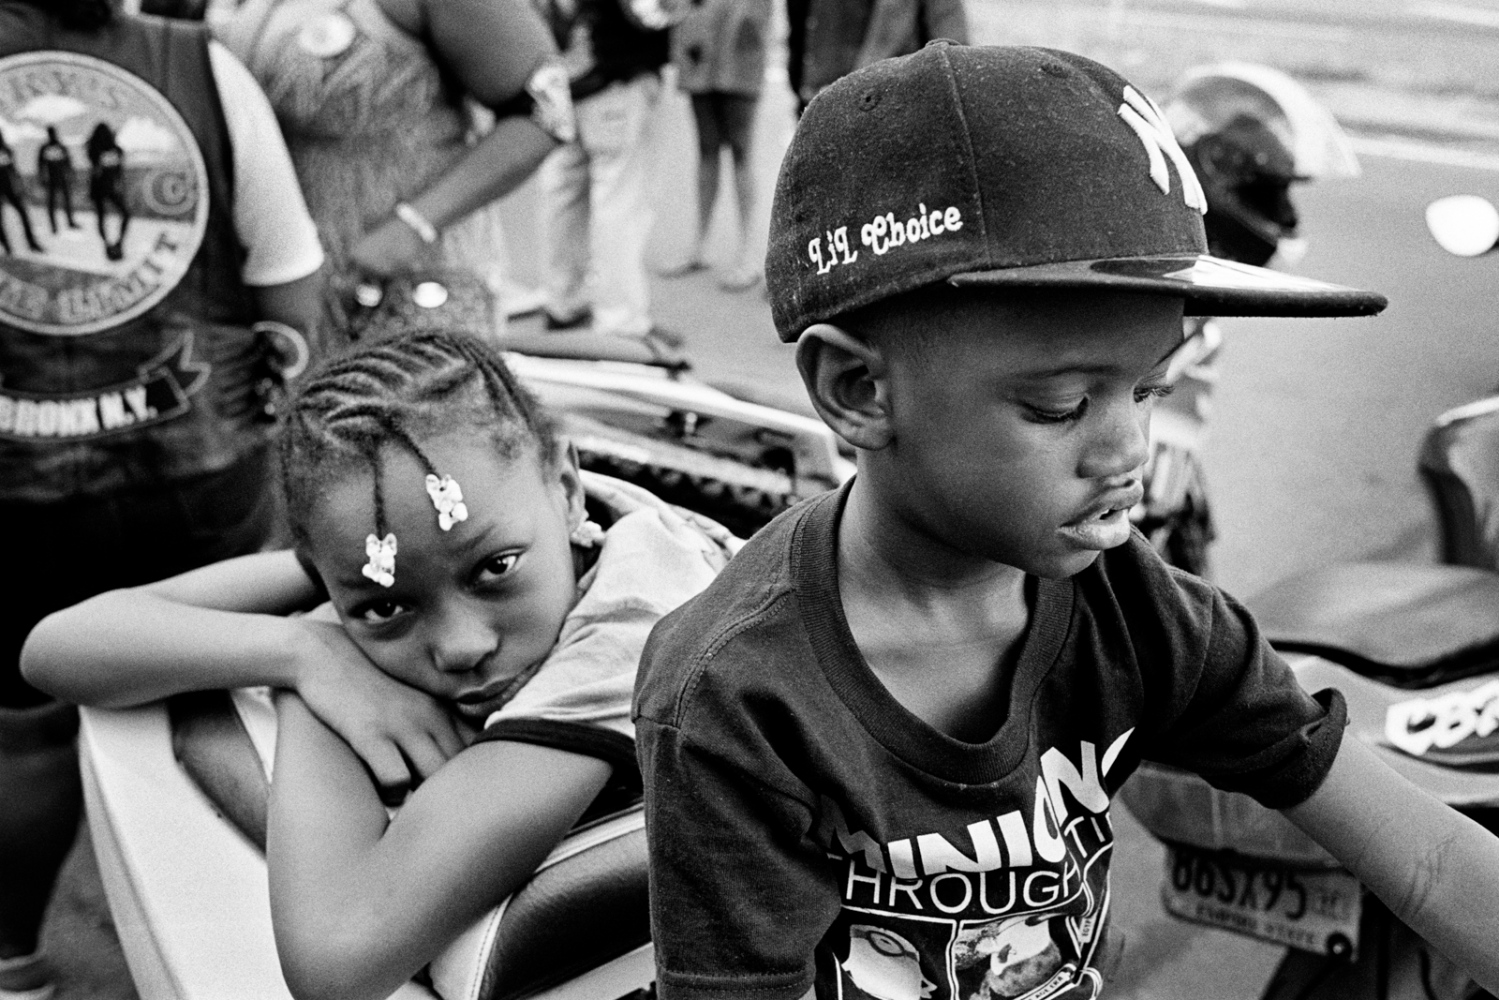 Jailyn and Xavier at the Black Falcons MC bike blessing, The Bronx, 2016